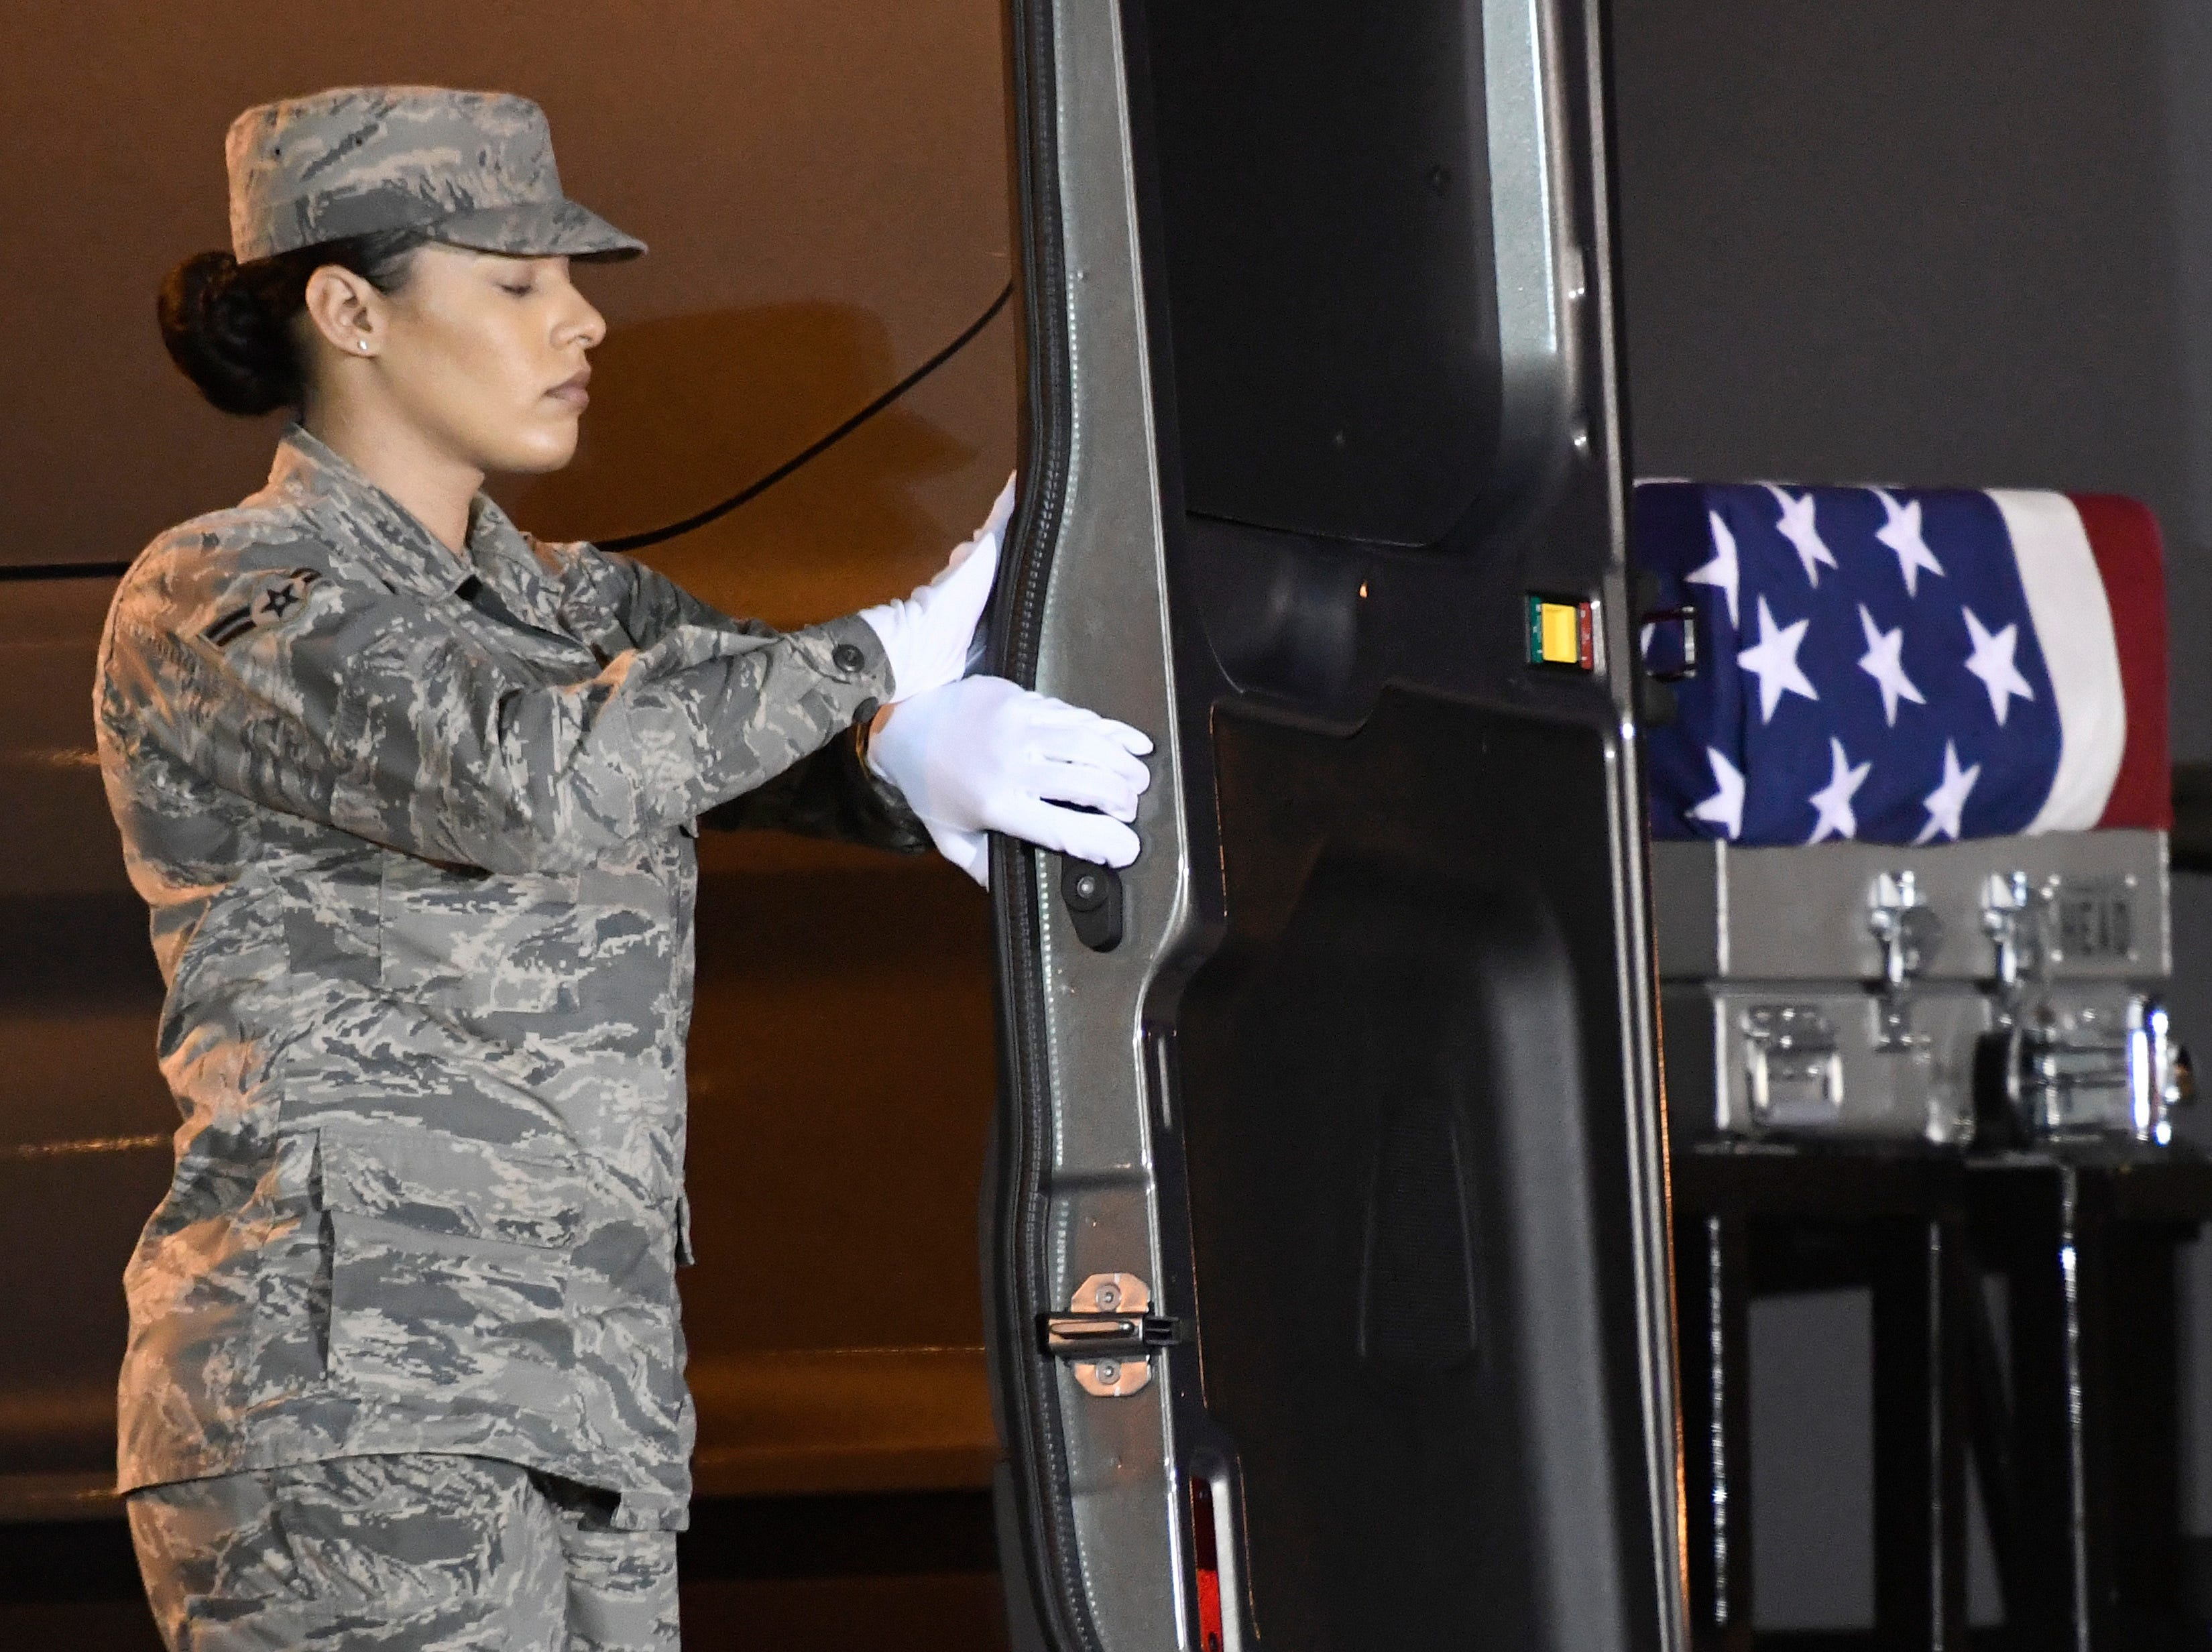 Airman 1st Class Italia Sampson closes a vehicle holding a transfer case containing the remains of Army Sgt. James A. Slape at Dover Air Force Base, Del., on Saturday, Oct. 6, 2018. According to the Department of Defense, Slape, 23, of Morehead City, N.C., died Oct. 4, 2018 in Helmand province, Afghanistan, of injuries sustained from an improvised explosive device.